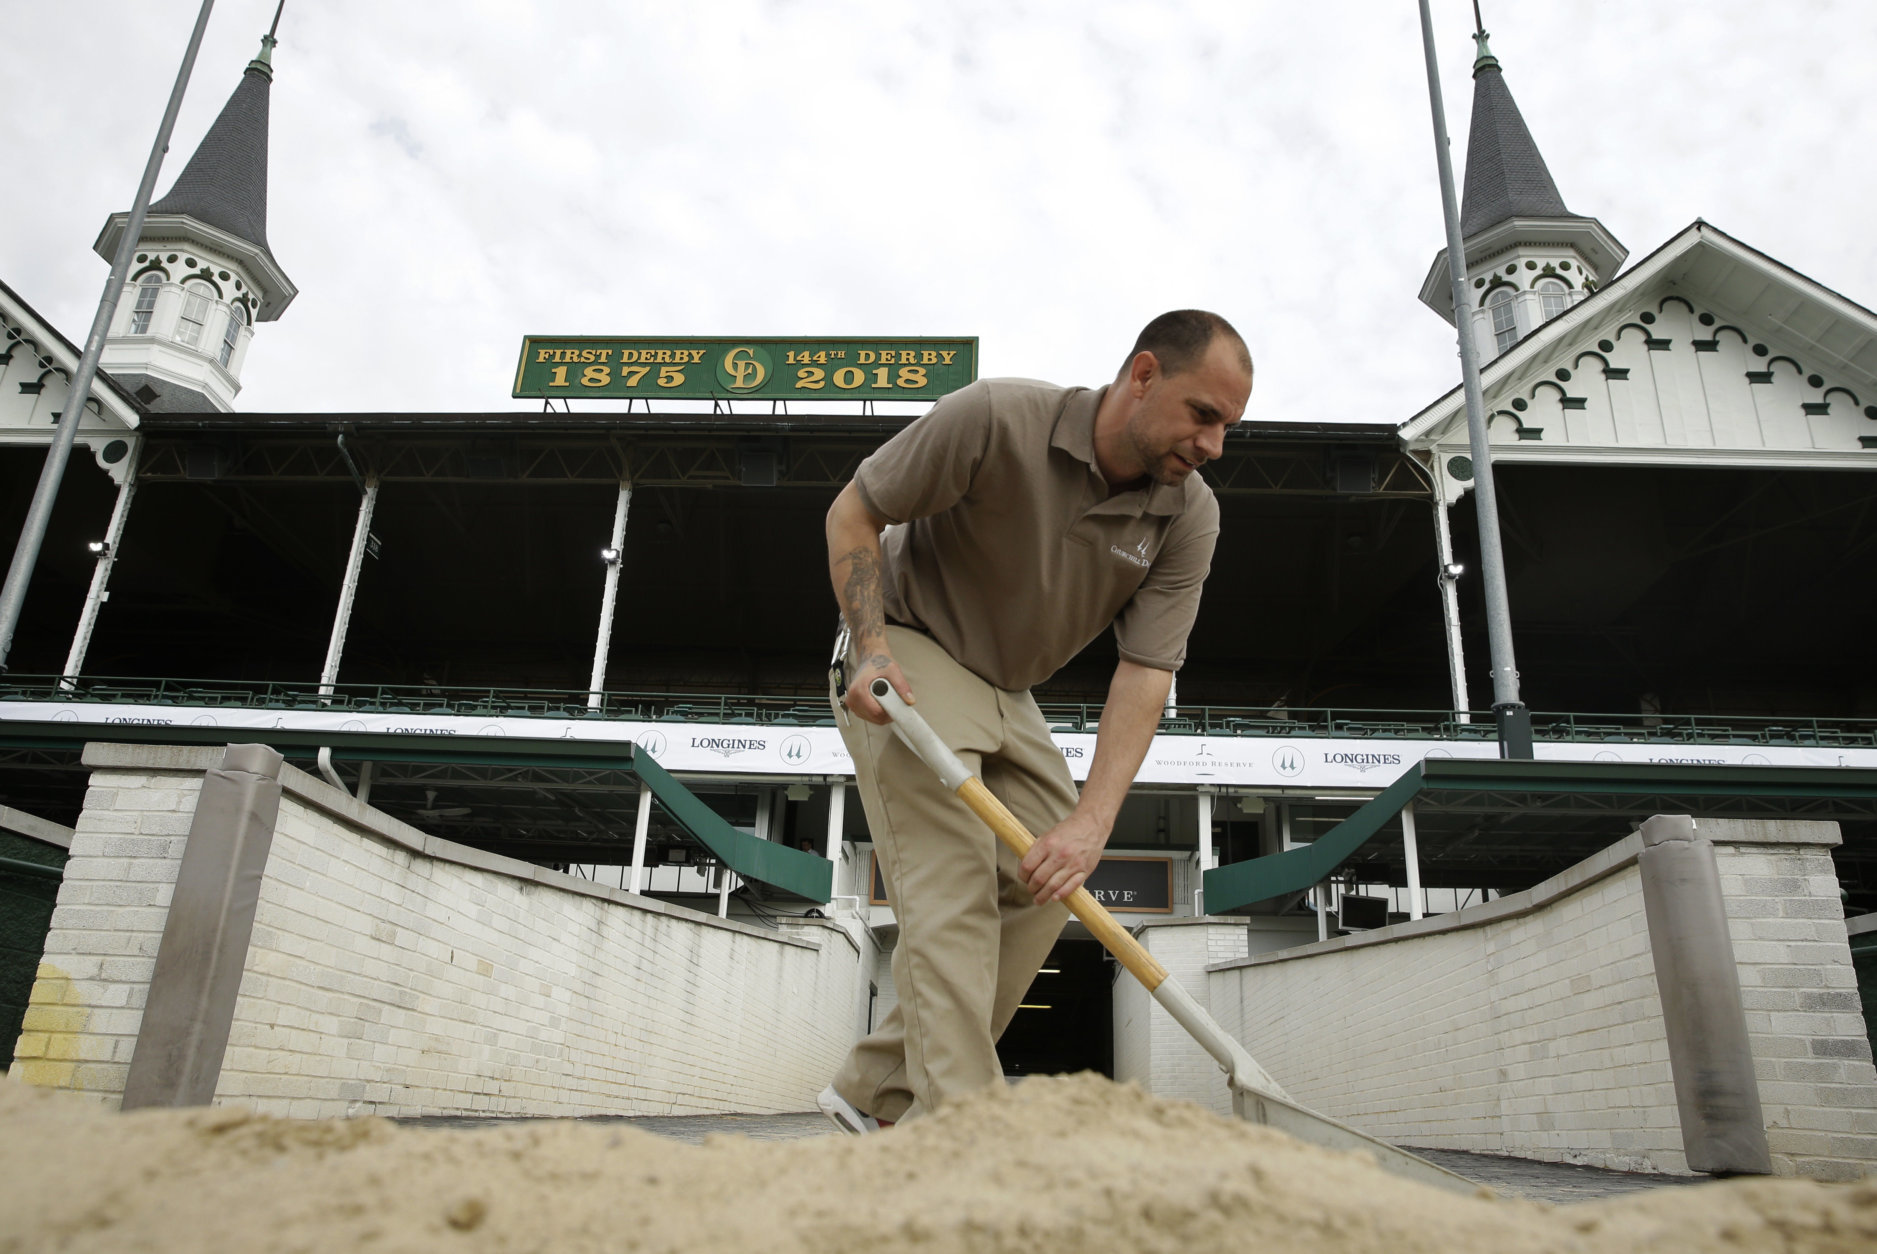 A worker scoops dirt back onto the track after morning training for race horses at Churchill Downs Wednesday, May 2, 2018, in Louisville, Ky. The 144th running of the Kentucky Derby is scheduled for Saturday, May 5. (AP Photo/Charlie Riedel)